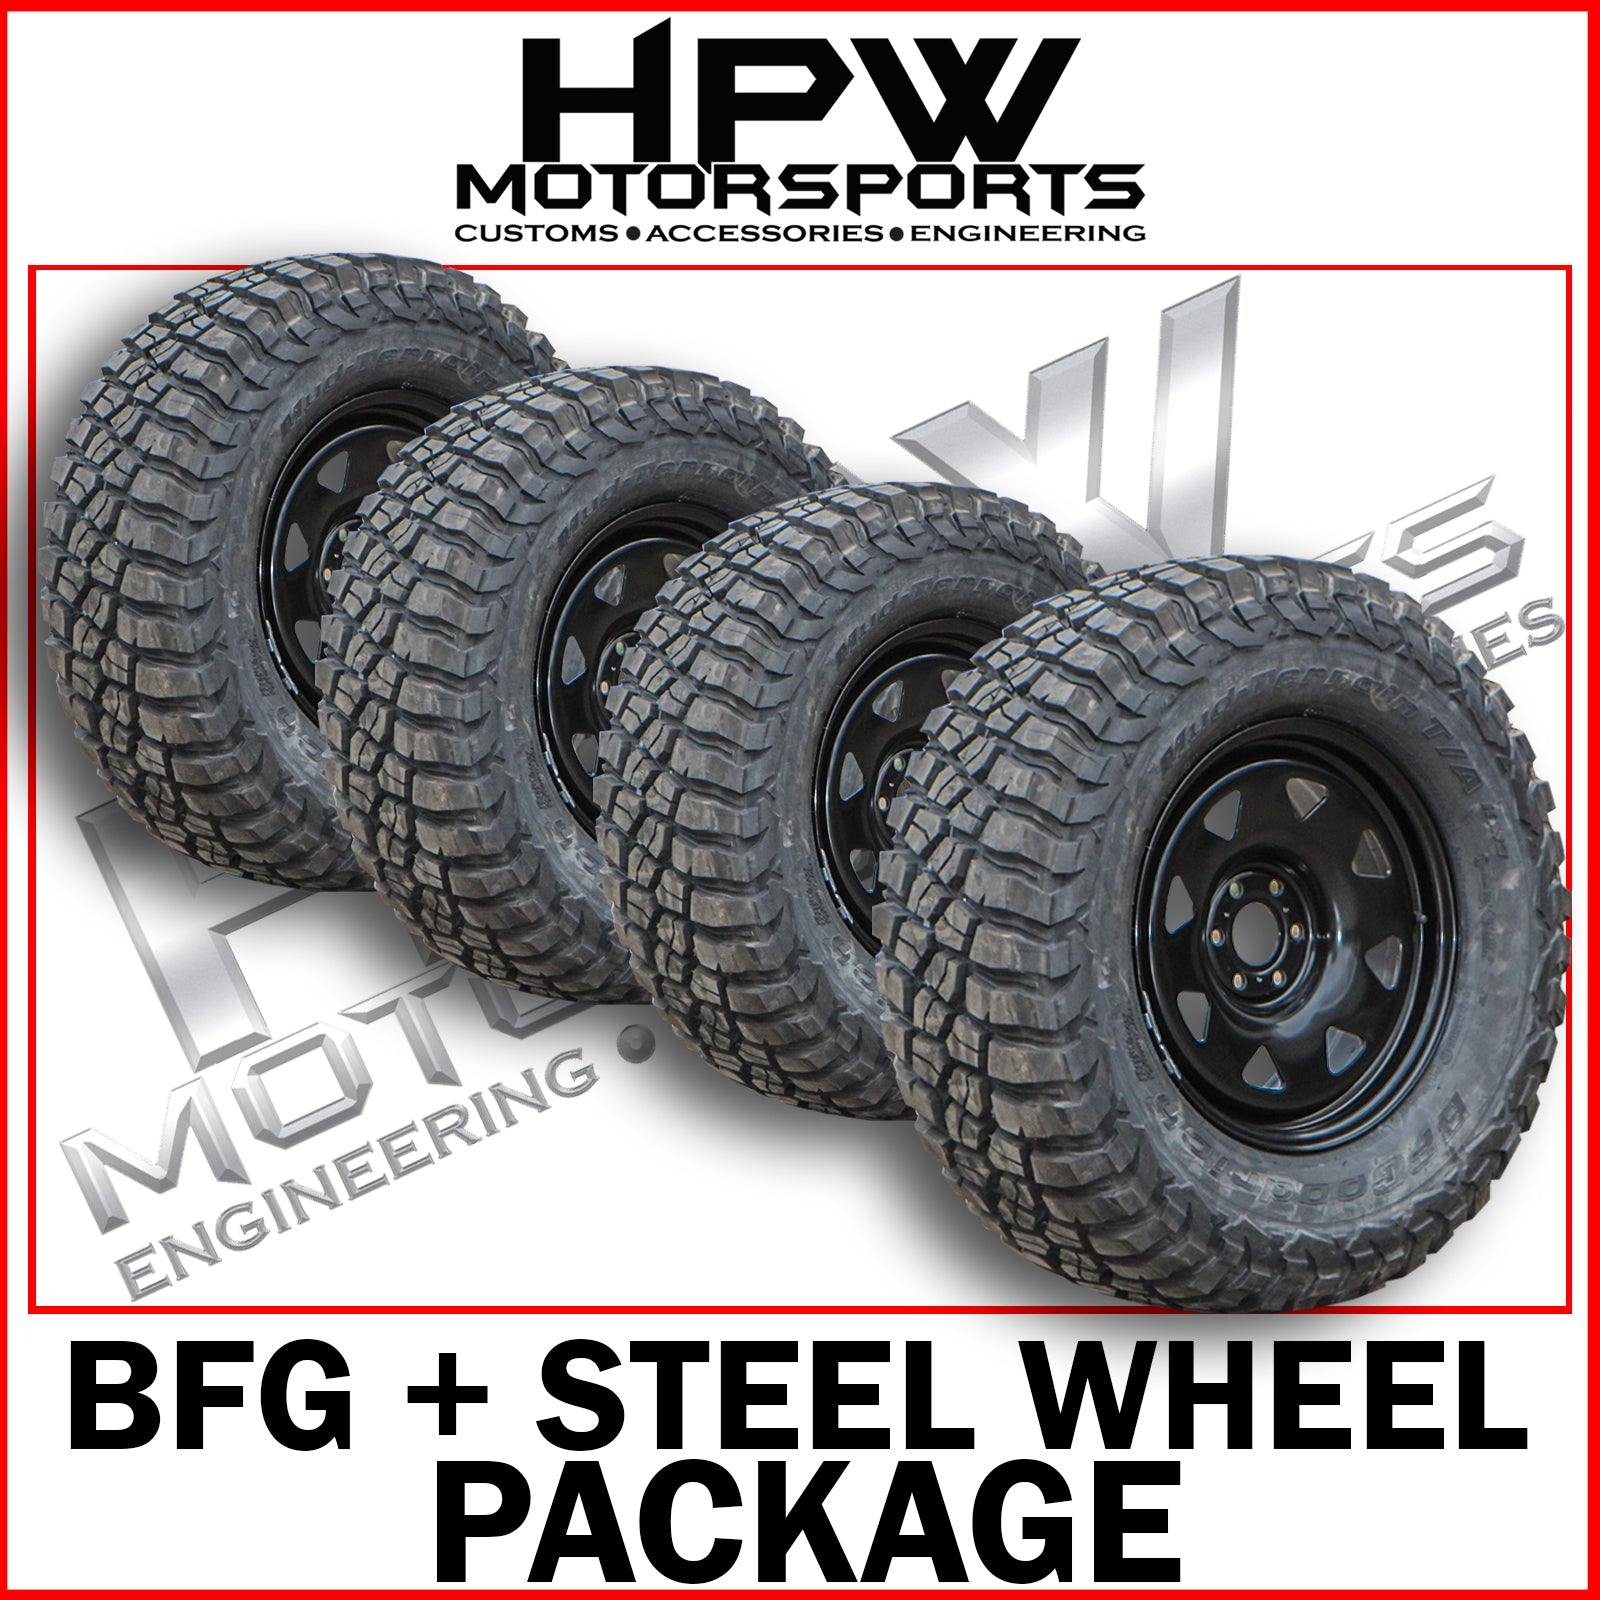 285/70/17 A/T BFGOODRICH TYRES & DYNAMIC STEEL WHEELS 17X8 (SET OF 4)